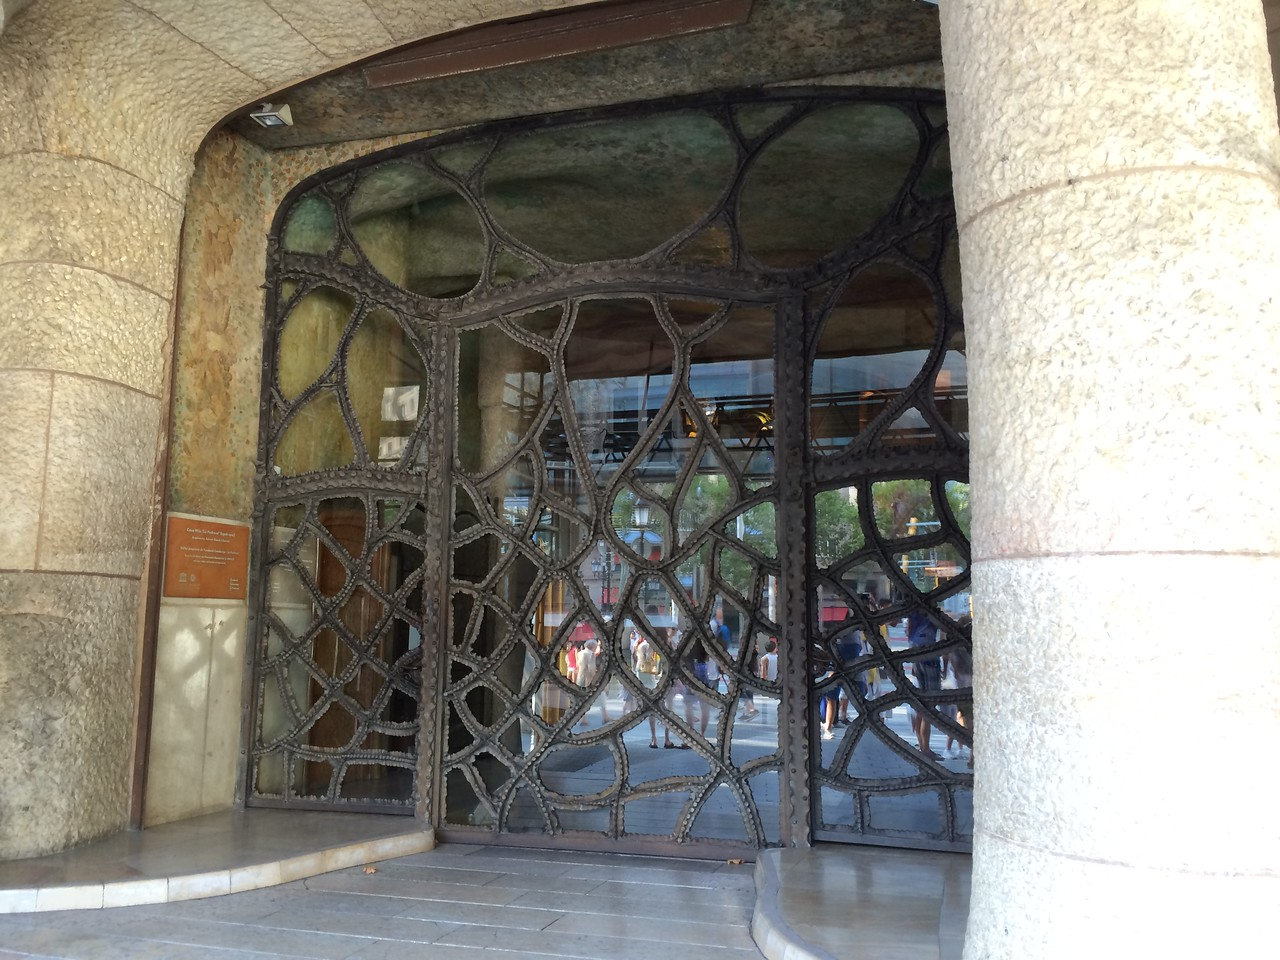 Then off we went to Passeig de Gràcia to see another Gaudí work, Casa Mila.<br /> Passeig is Catalan for promenade. The whole building was covered in construction tarp and all I could get was the door. Again curvilinear lines and iron work typical of Gaudí.